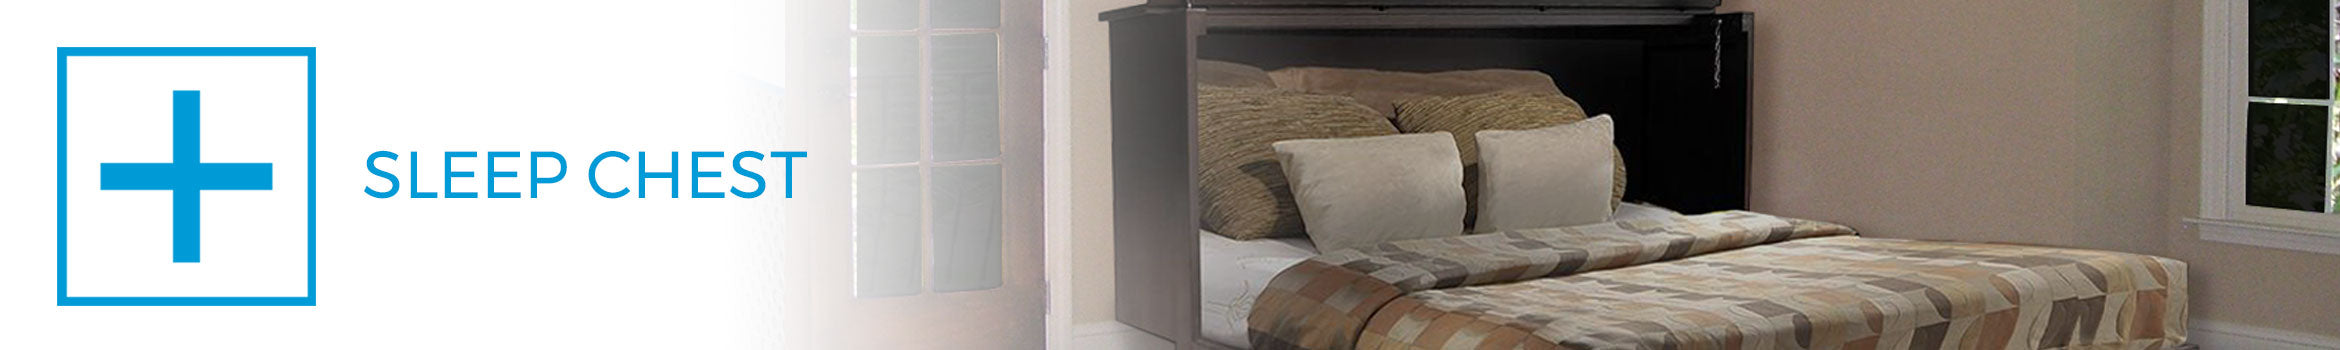 sleep chest murphy bed alternative small space plus. Black Bedroom Furniture Sets. Home Design Ideas